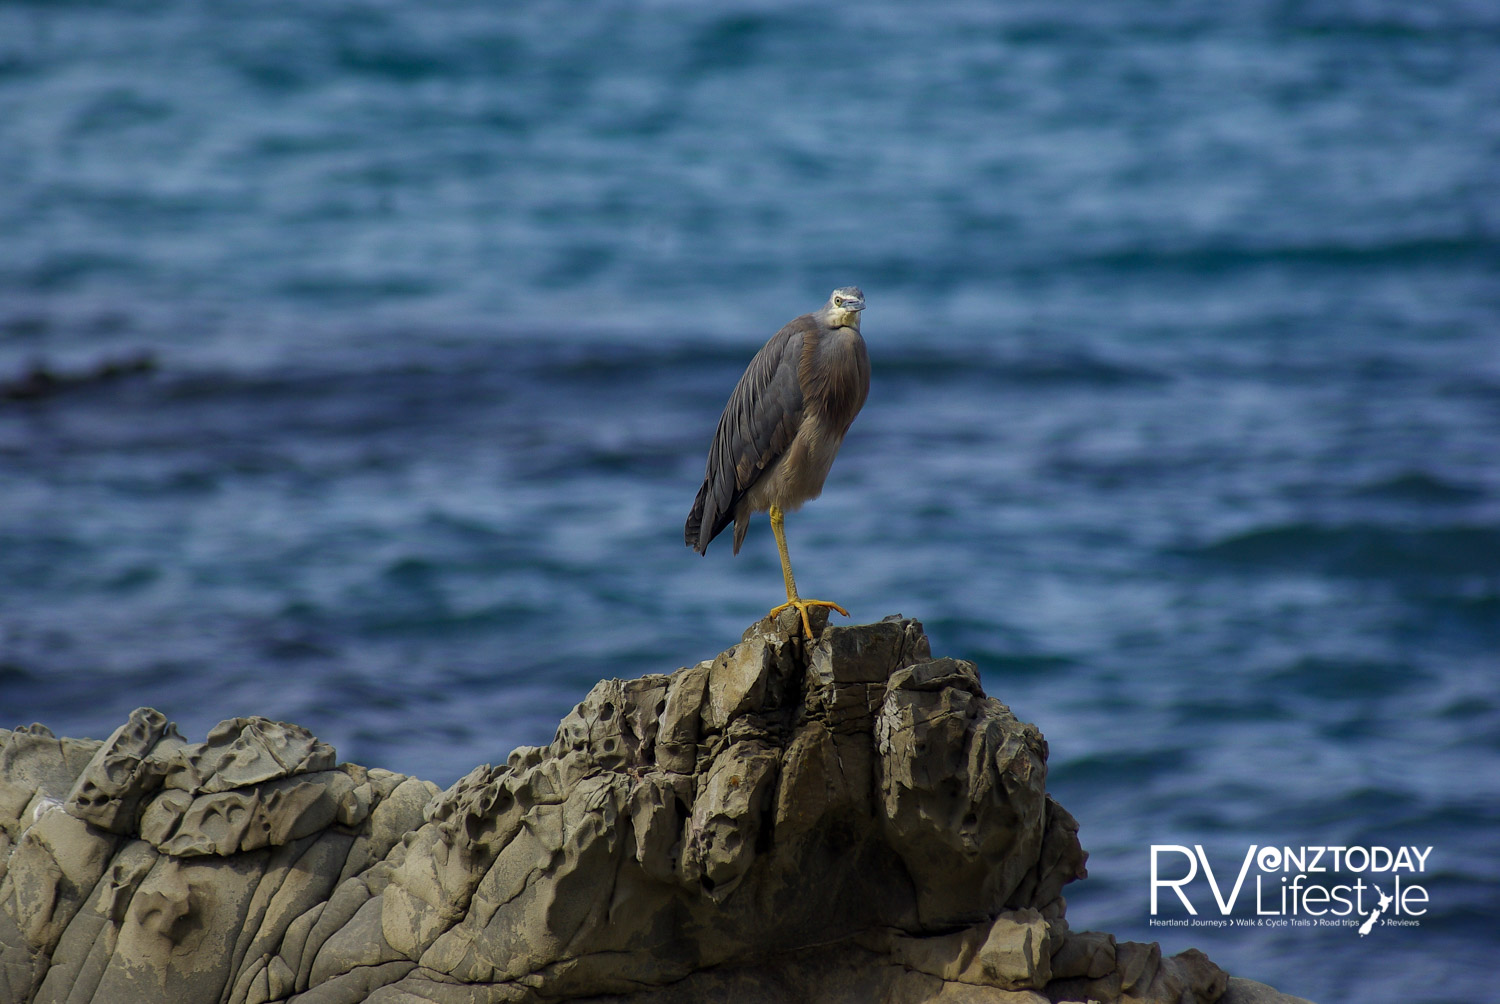 A sperm whale dives and waves goodbye. Taken on a previous trip. Wildlife on the Kaikoura Coast — a blue heron and a seal